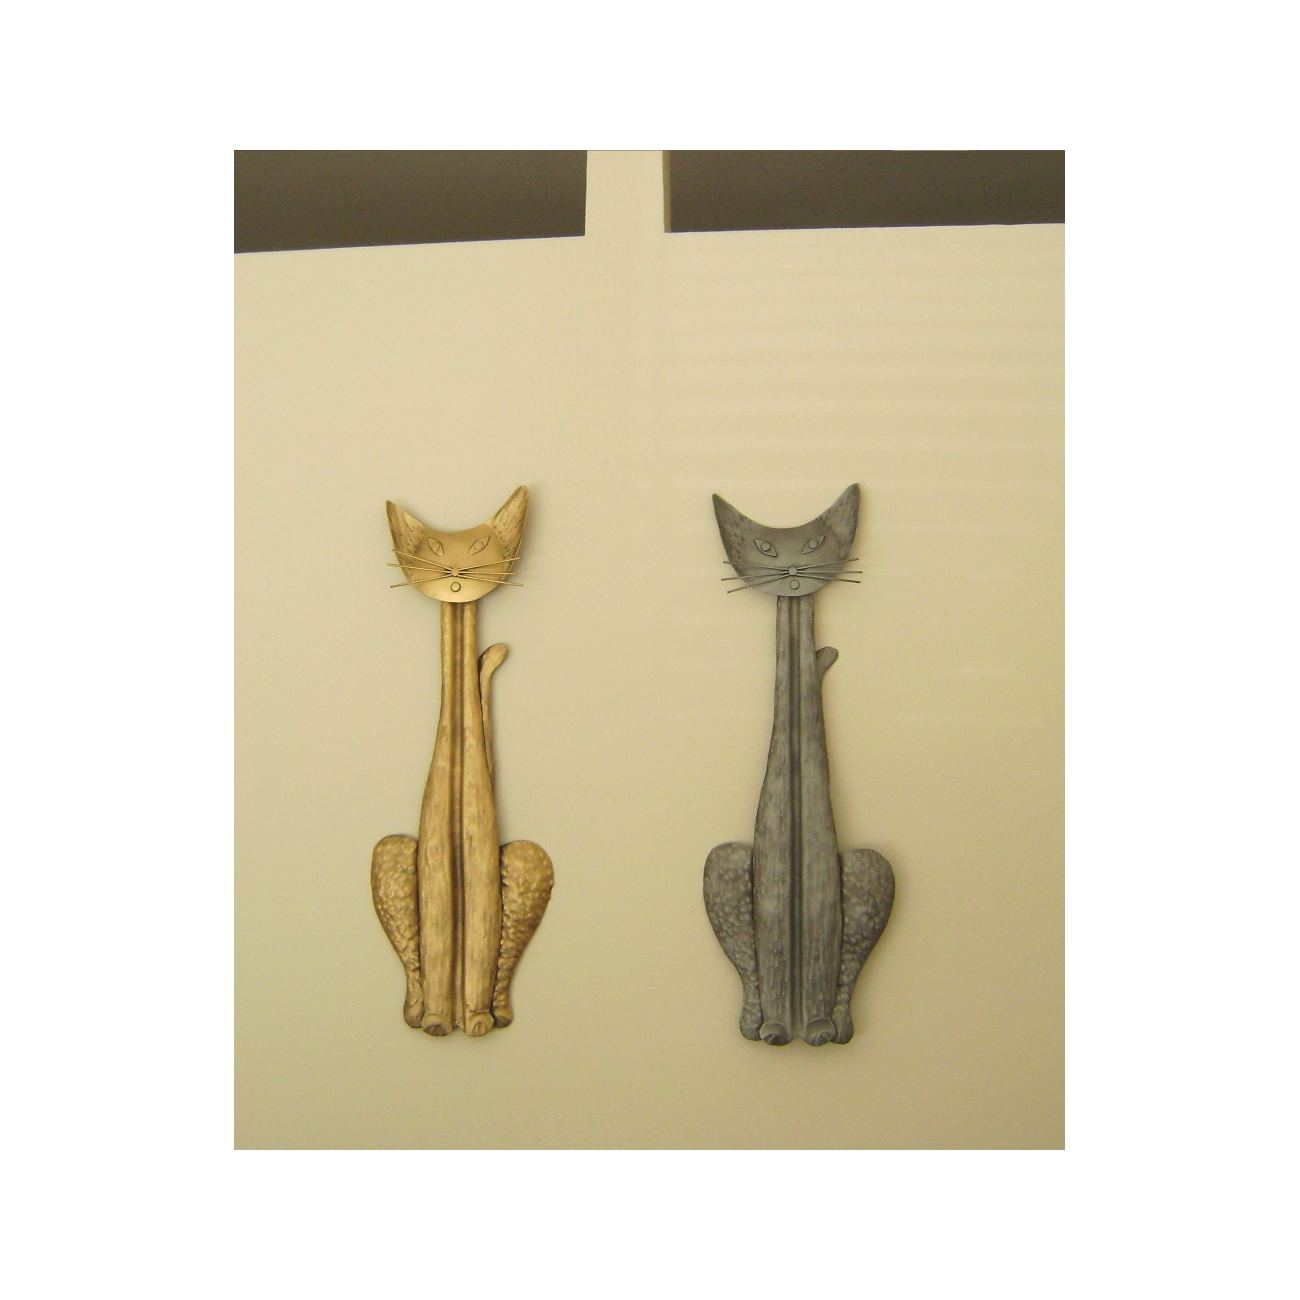 Cat Figure - Large Handmade Metal Wall Art Decor Sculpture - Gold ...